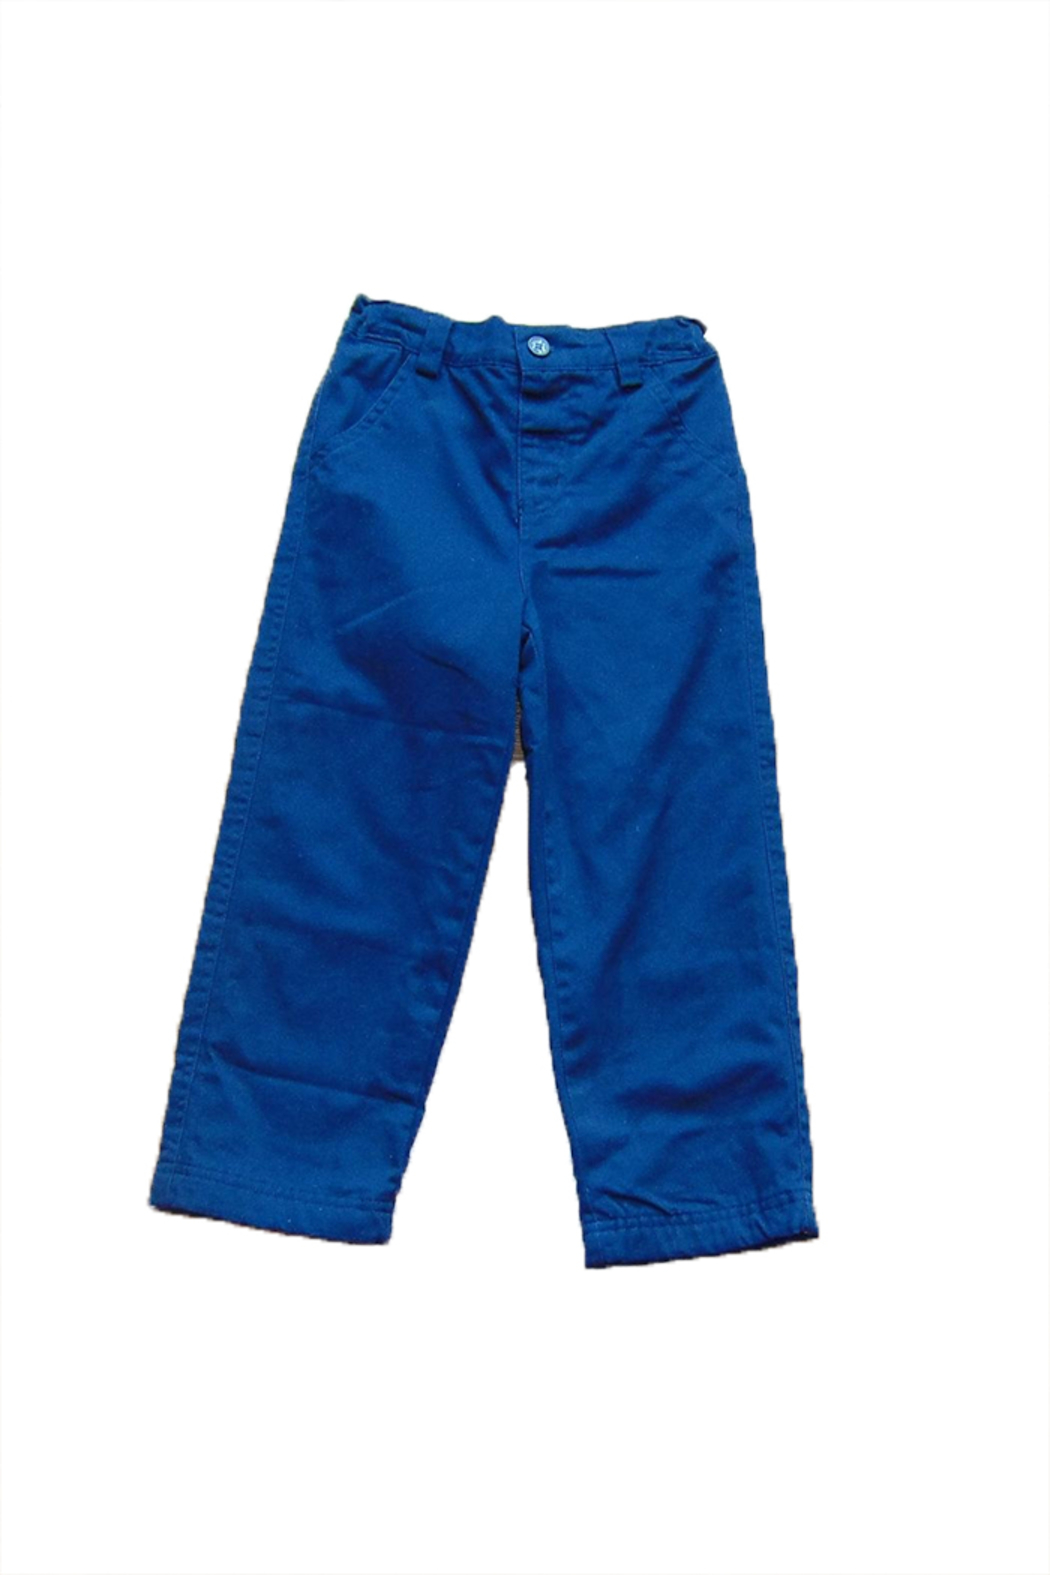 JoJo Maman Bebe Boys Cobalt Trousers - Front Cropped Image